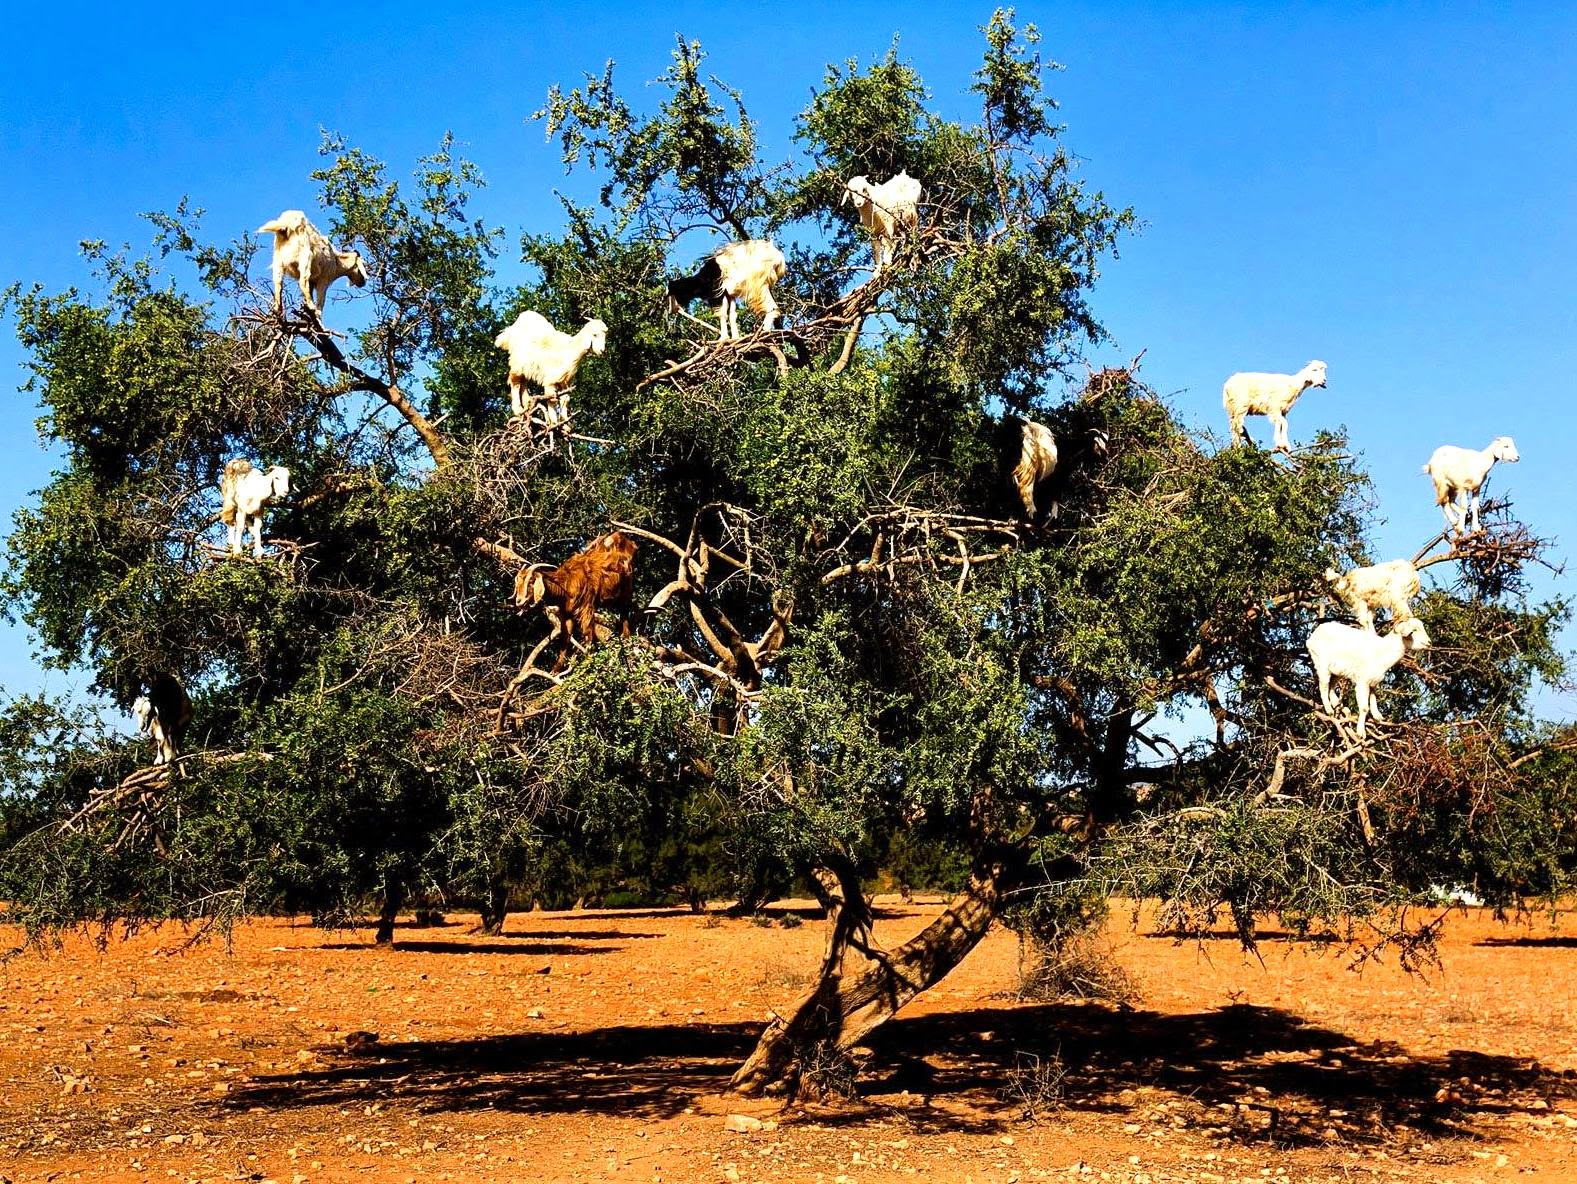 Name:  so-you-thought-goats-couldnt-climb-trees-heres-the-tree-climbing-goats-of-morocco-theflyingtorto.jpg Views: 174 Size:  720.4 KB